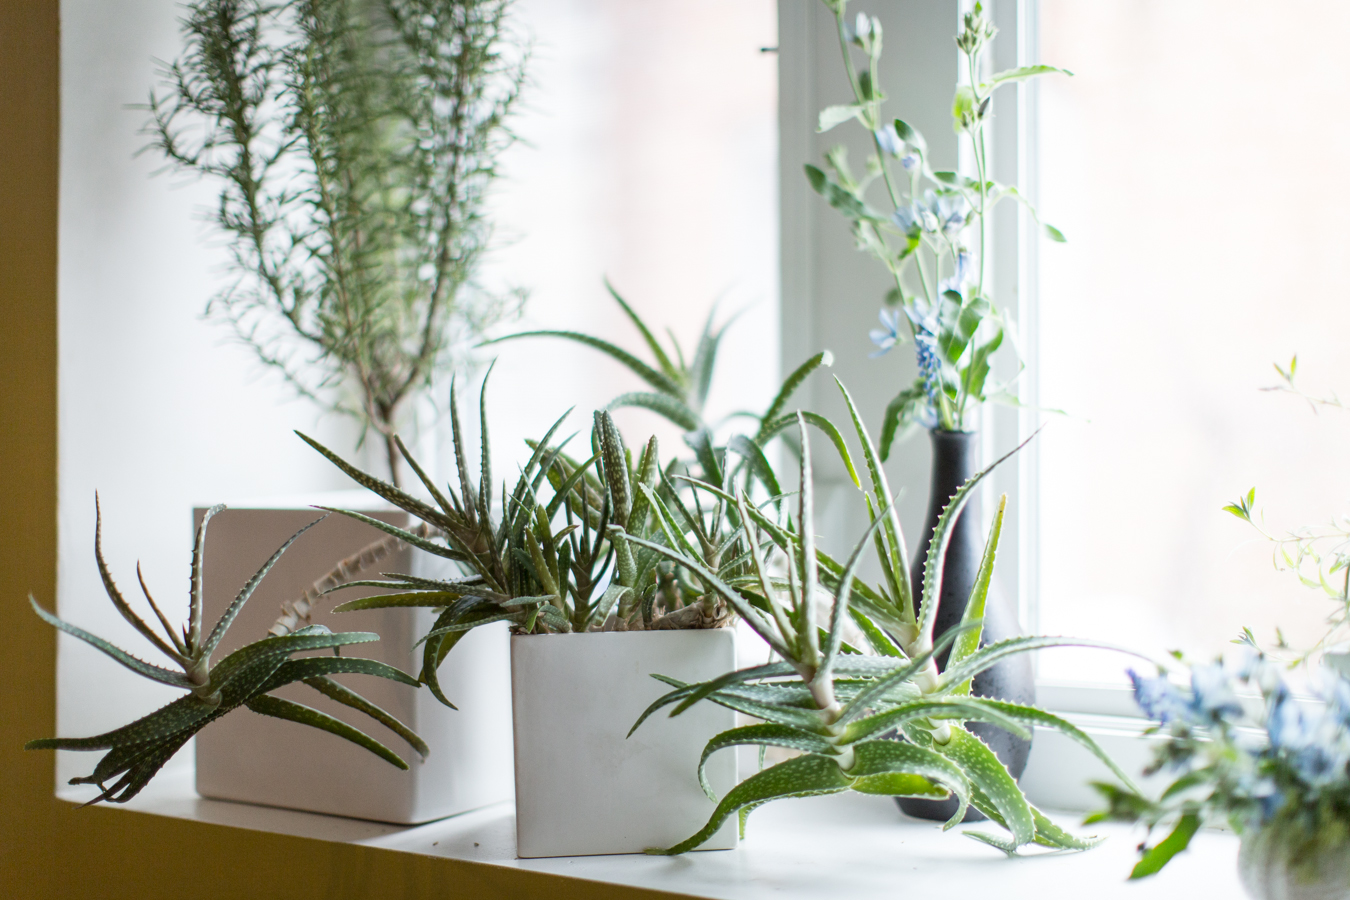 16 Low-Maintenance Indoor Houseplants Most Likely to Survive ... on inside home goods, inside home art, inside home backgrounds, inside home decorations, inside home lighting, inside home photography, inside home bugs, inside home flowers, inside home walls, inside home trees, inside home gardens, inside home design, inside home christmas, inside home fire,